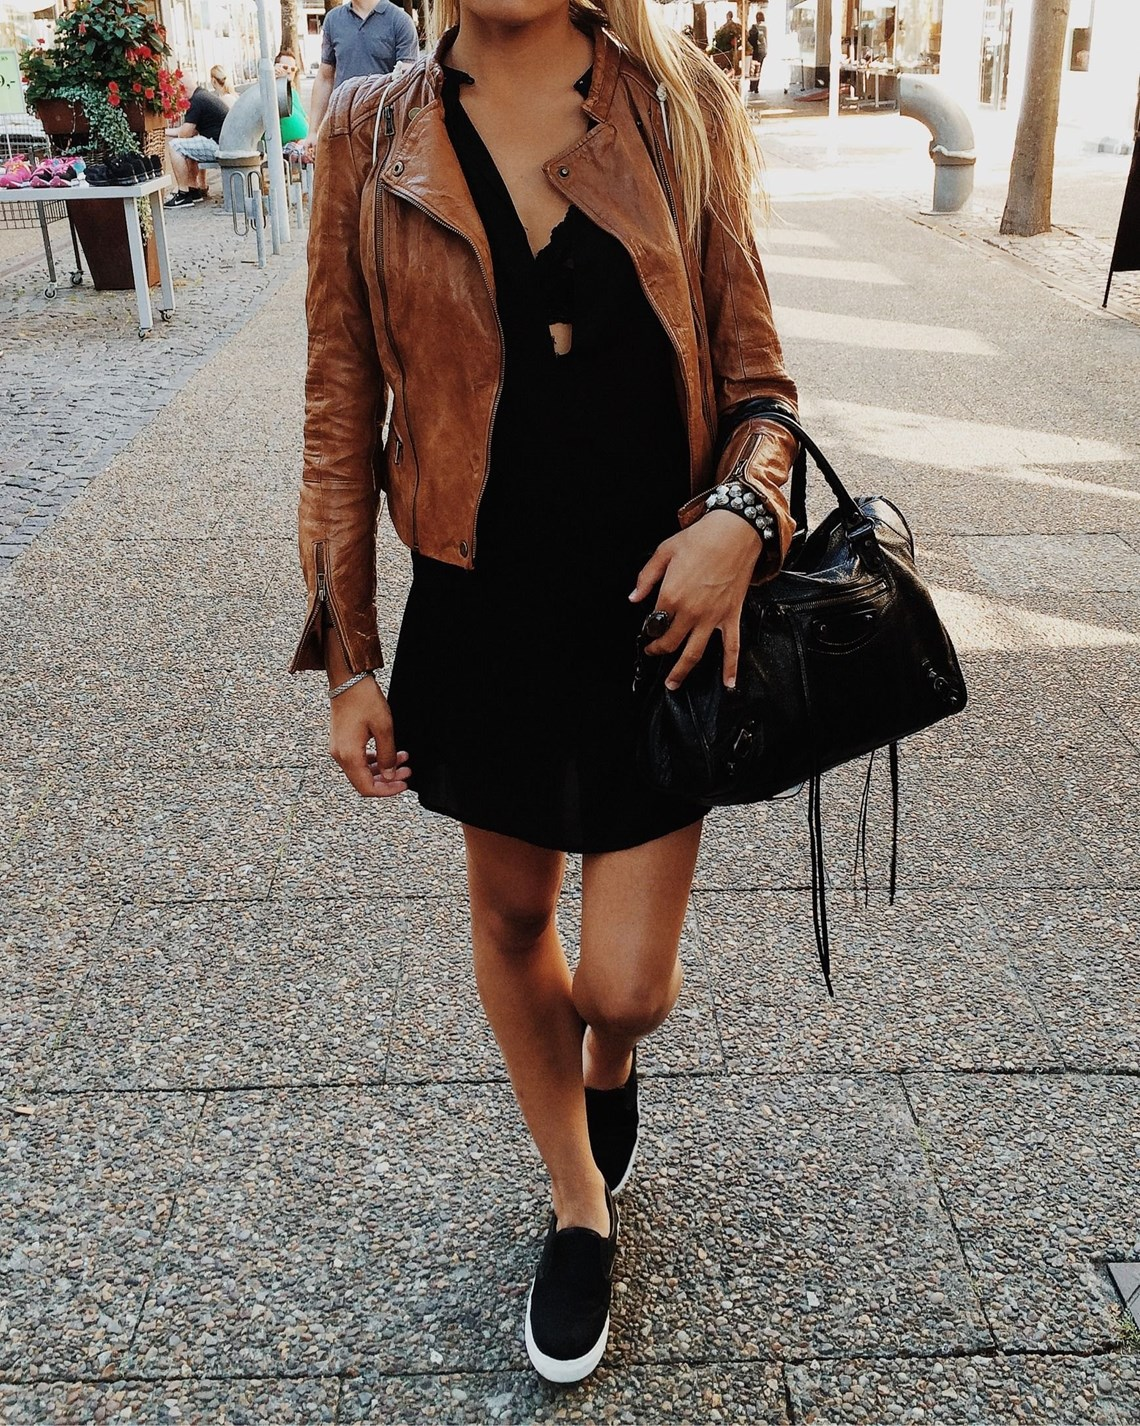 The Leather Jacket in Autumn